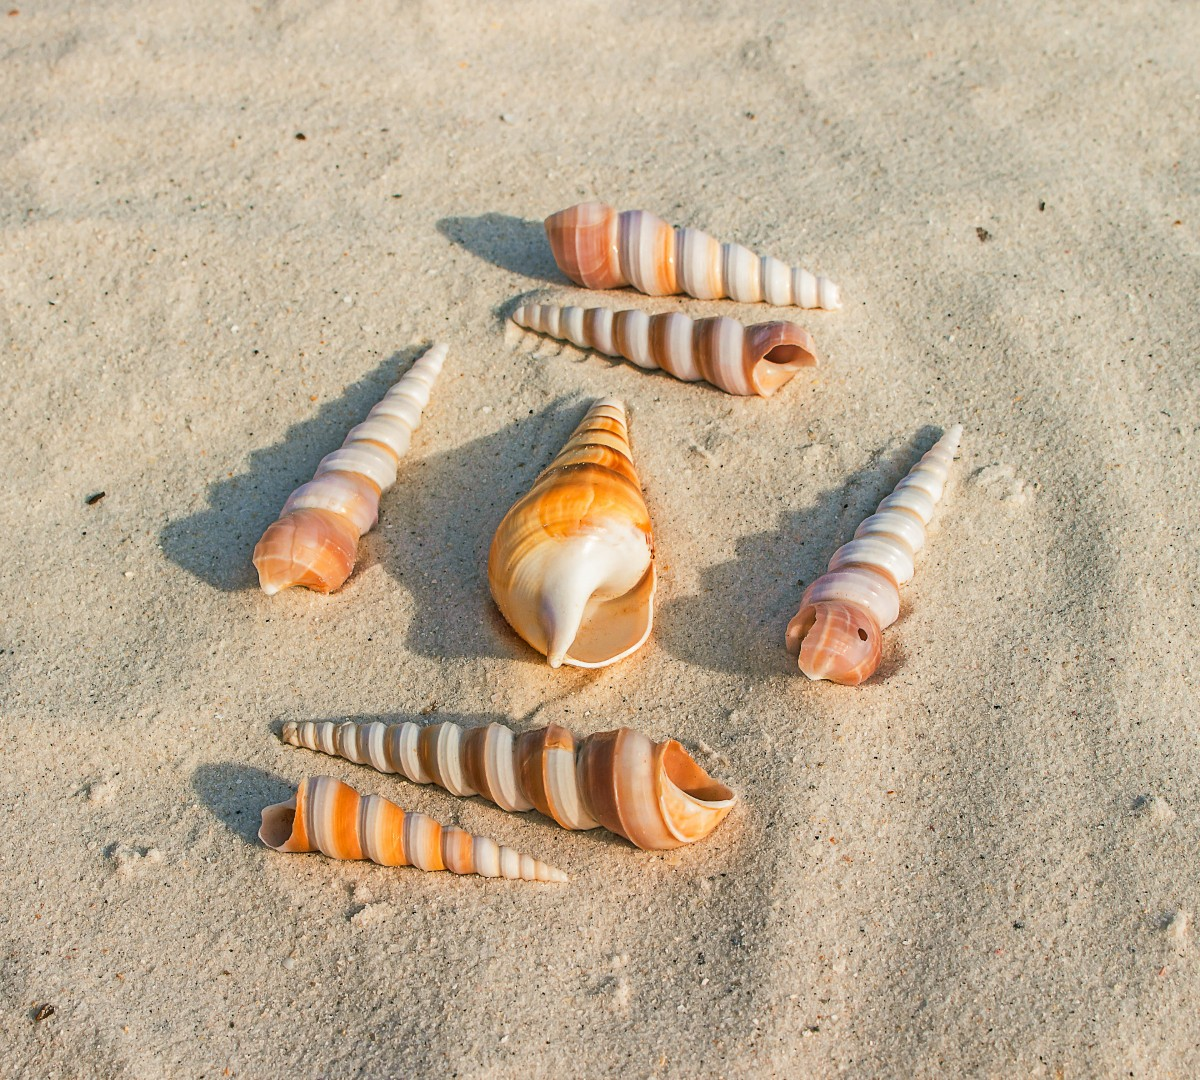 sea_shells_sand_beach_marine_animal_gastropod_molluscum-592419